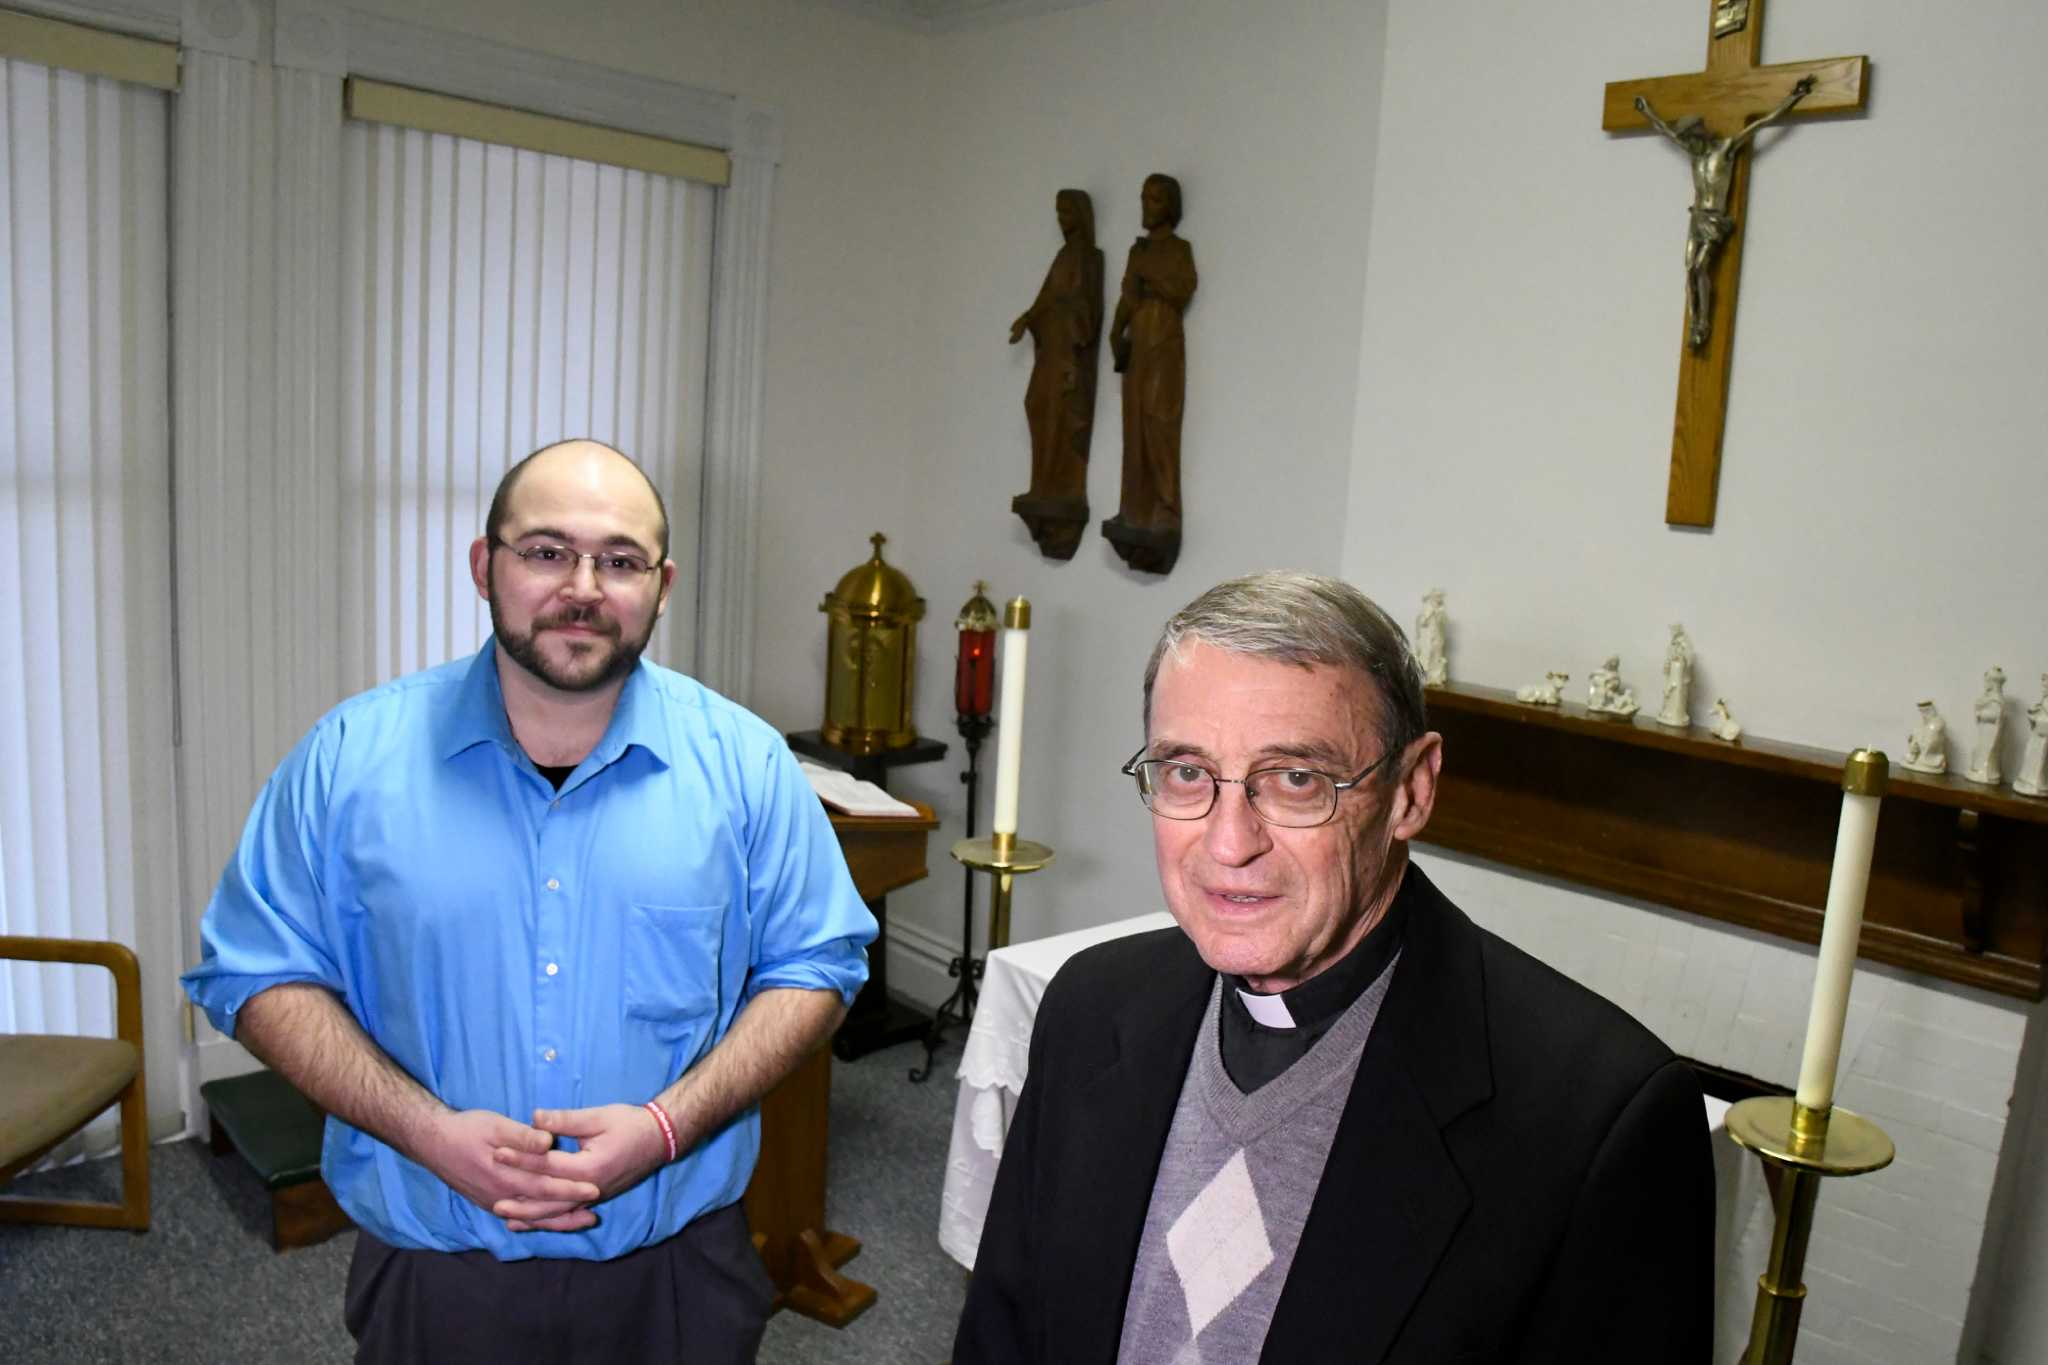 More retired than active priests historic first in albany diocese